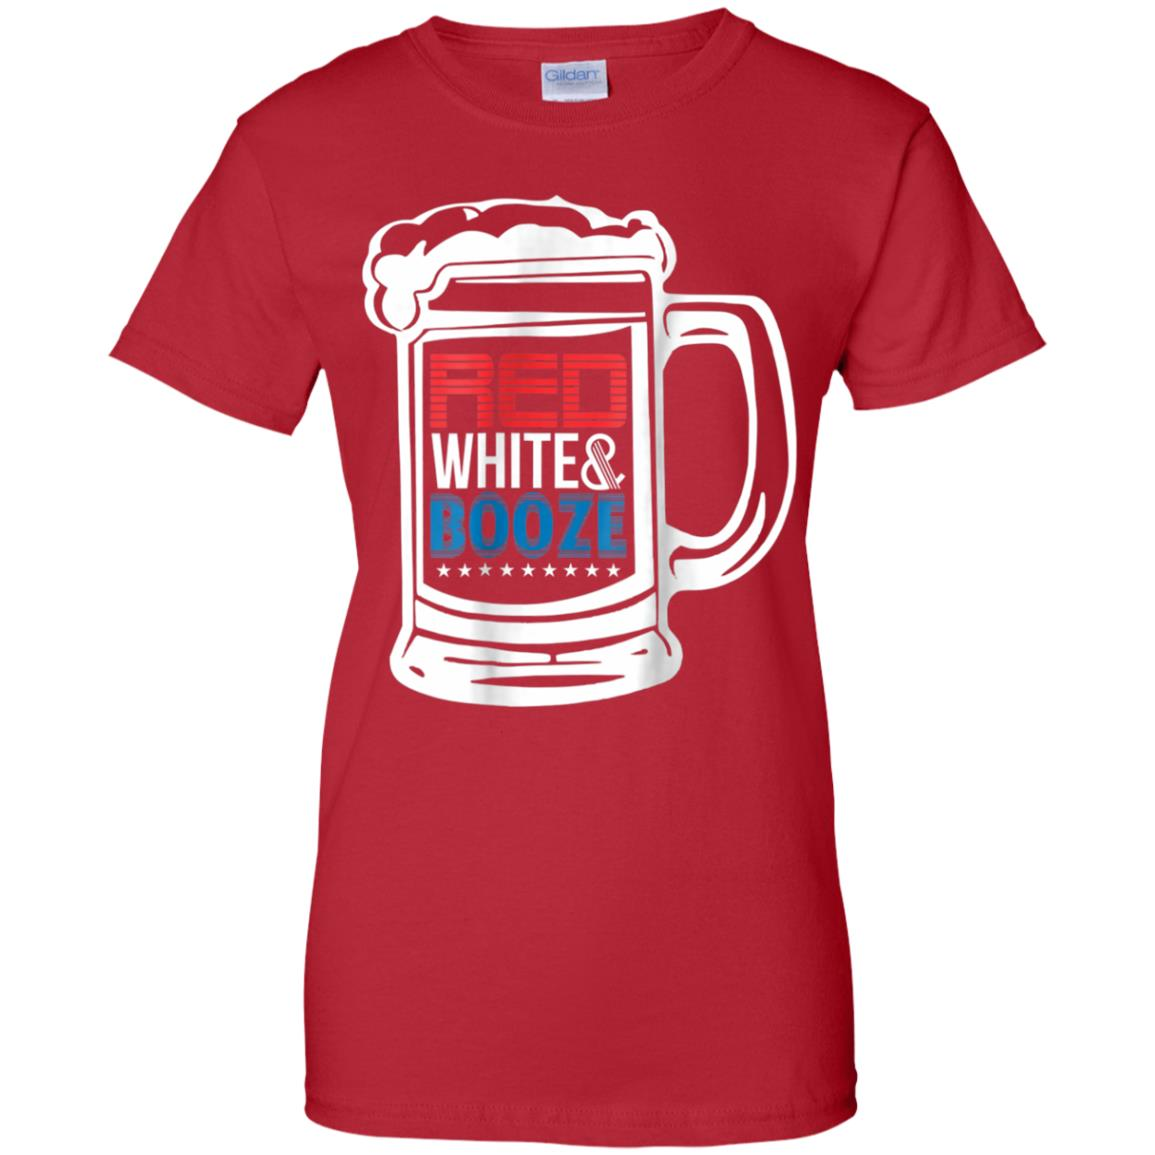 12e0bf2d Awesome 4th of july t shirt patriotic red, white, & booze gift tee ...